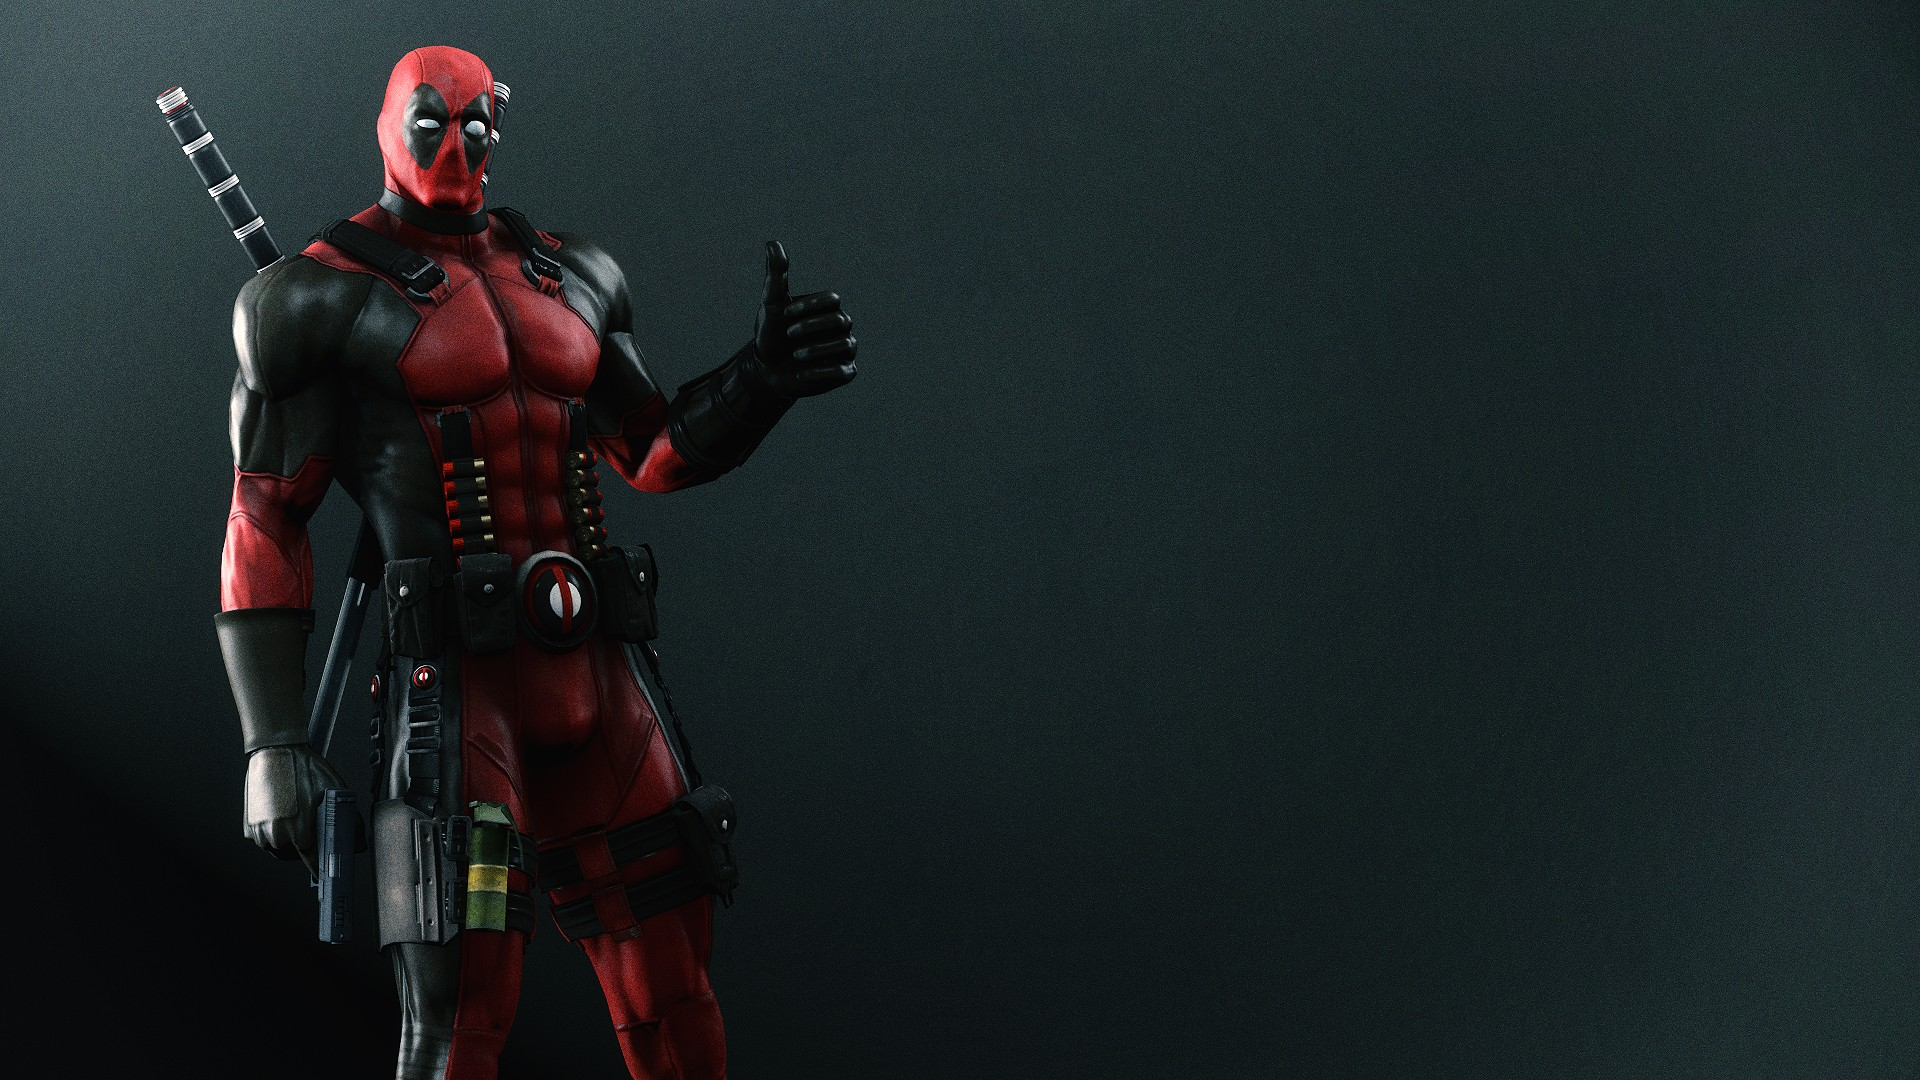 deadpool wade wilson wallpaper 1920 x 1080 Wallpaper HD Wallpaper 1920x1080